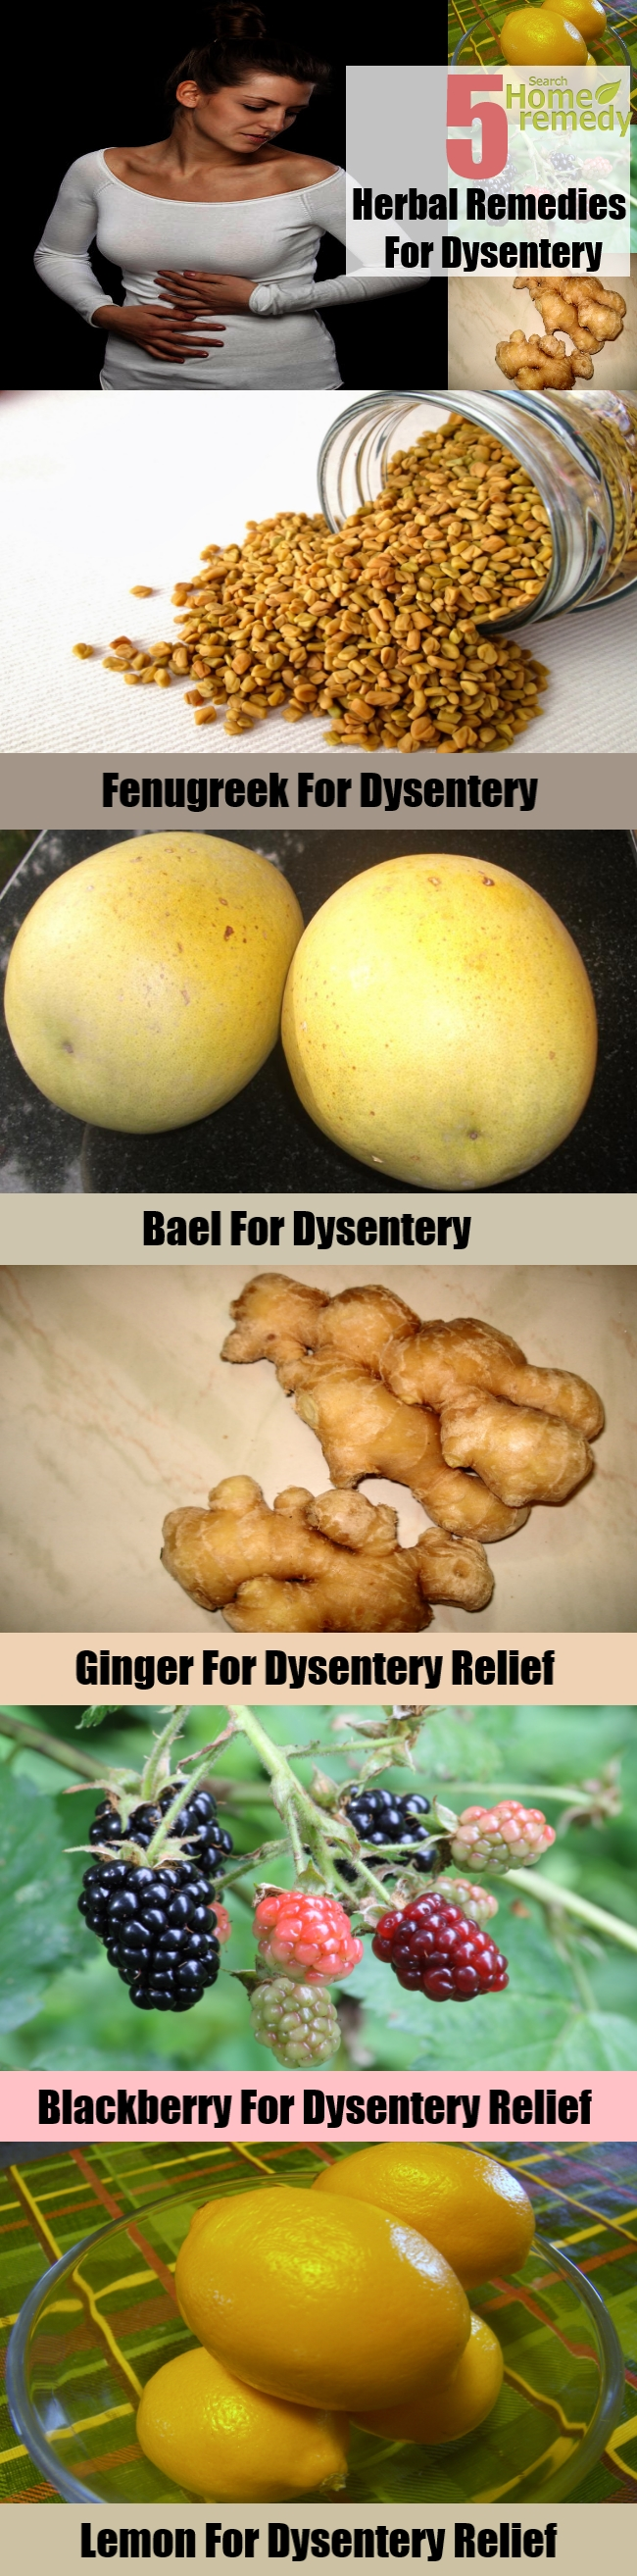 Best 5 Herbal Remedies For Dysentery